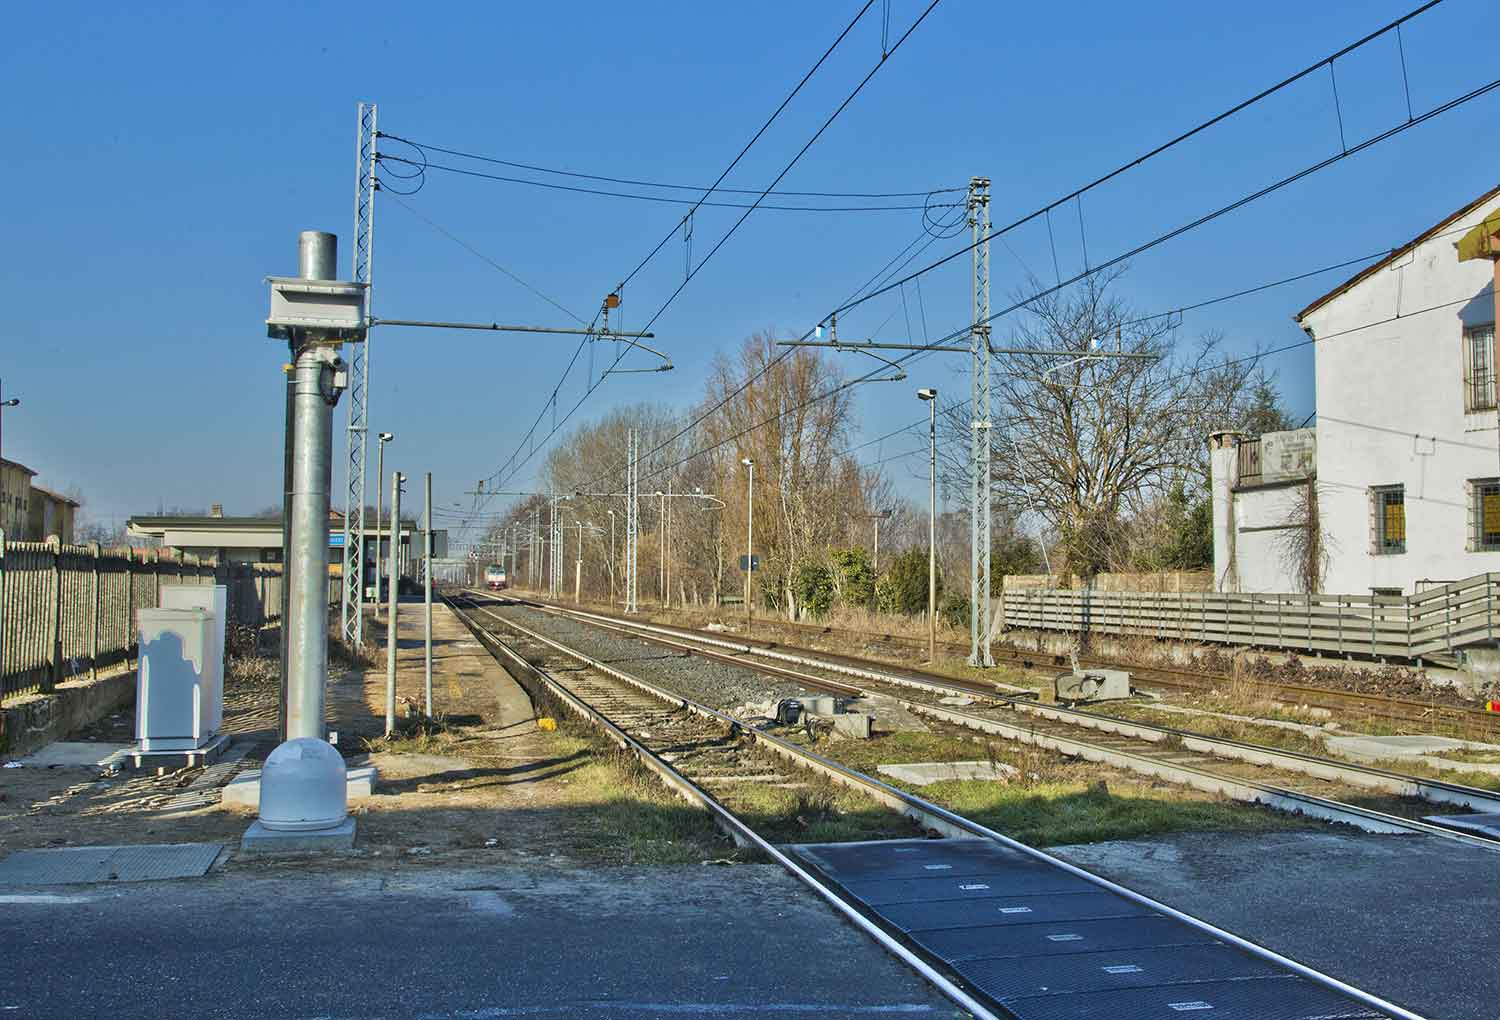 Sirio-LX for railway monitoring